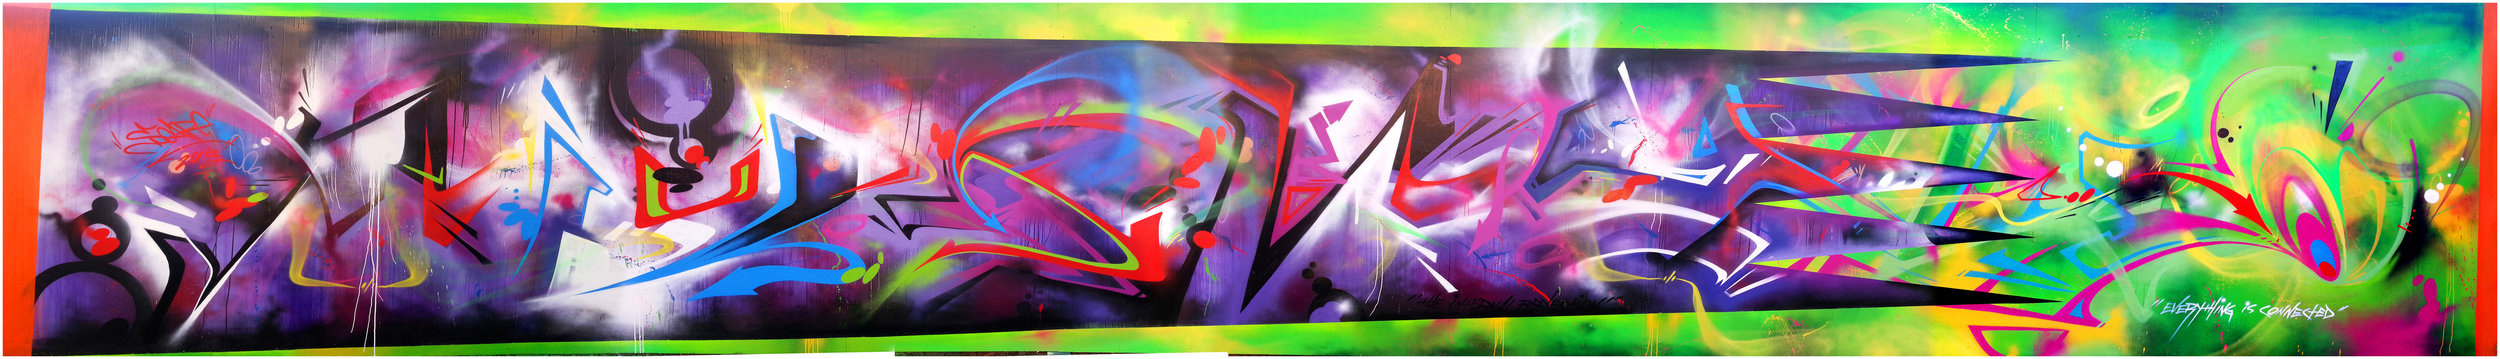 """The complete piece, """"Quantum"""", from 2013, East Palo Alto, CA."""